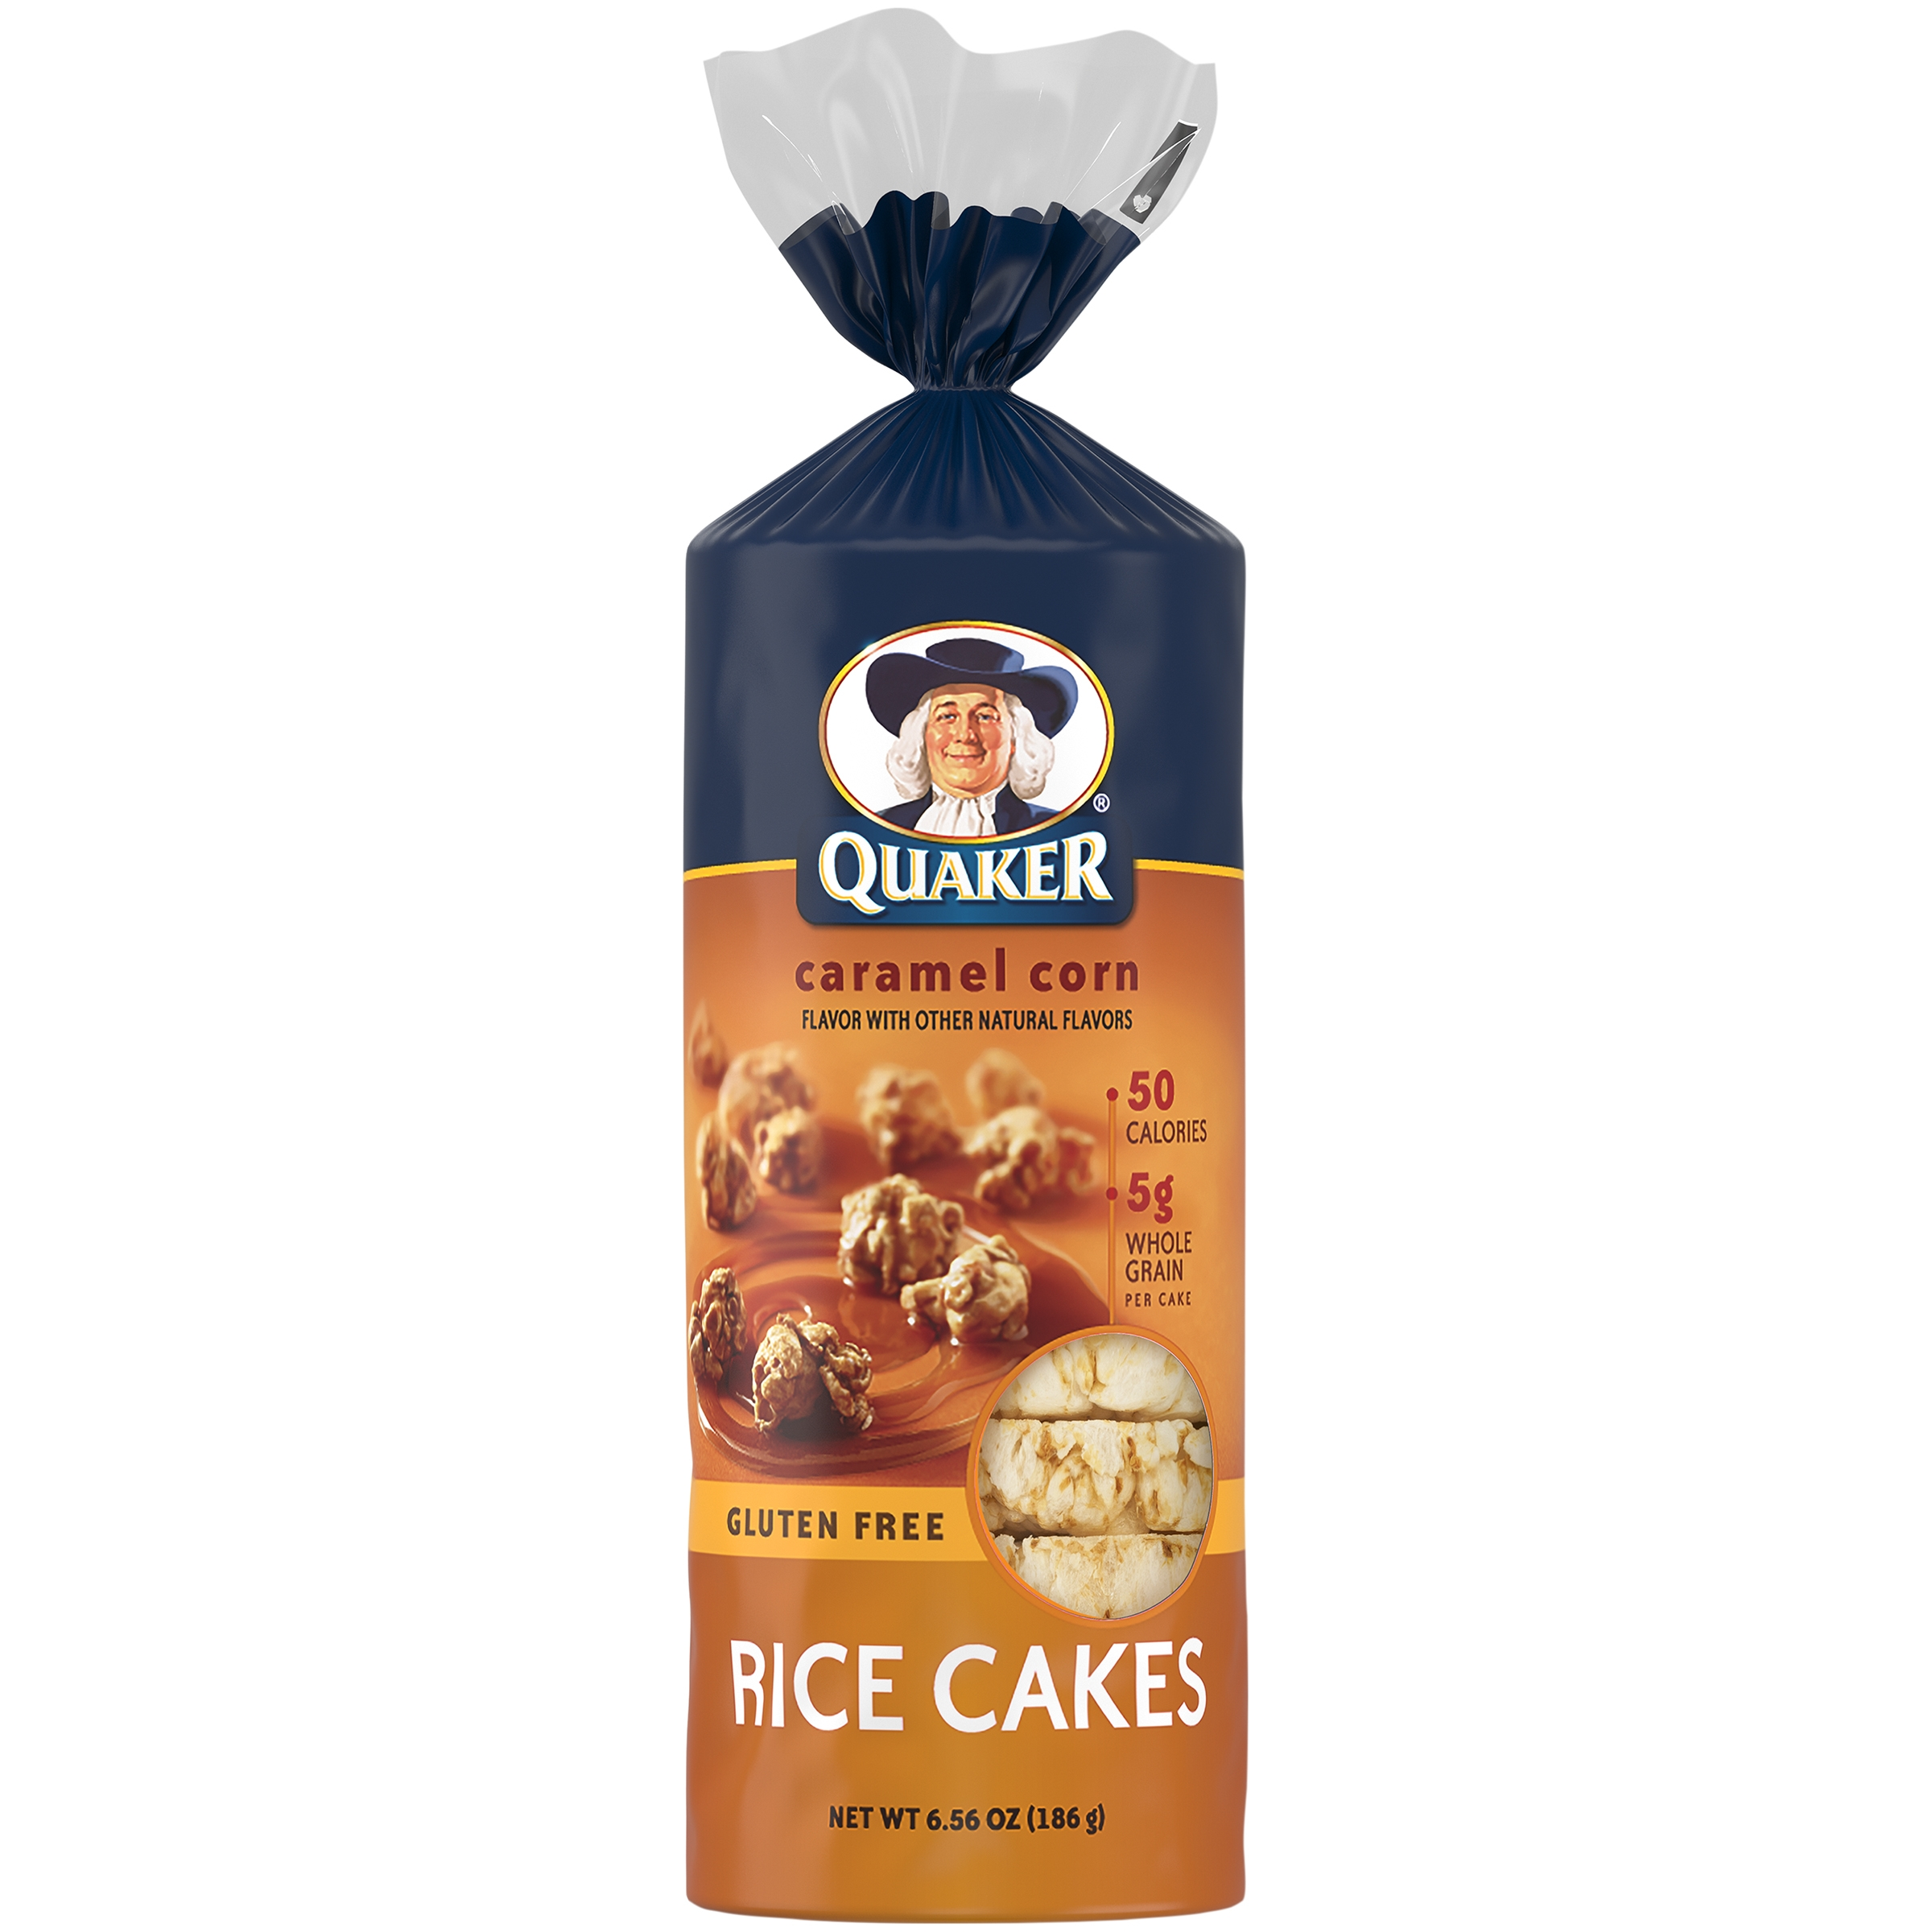 Quaker® Caramel Corn Rice Cakes, 6.56 oz. Bag - Walmart.com